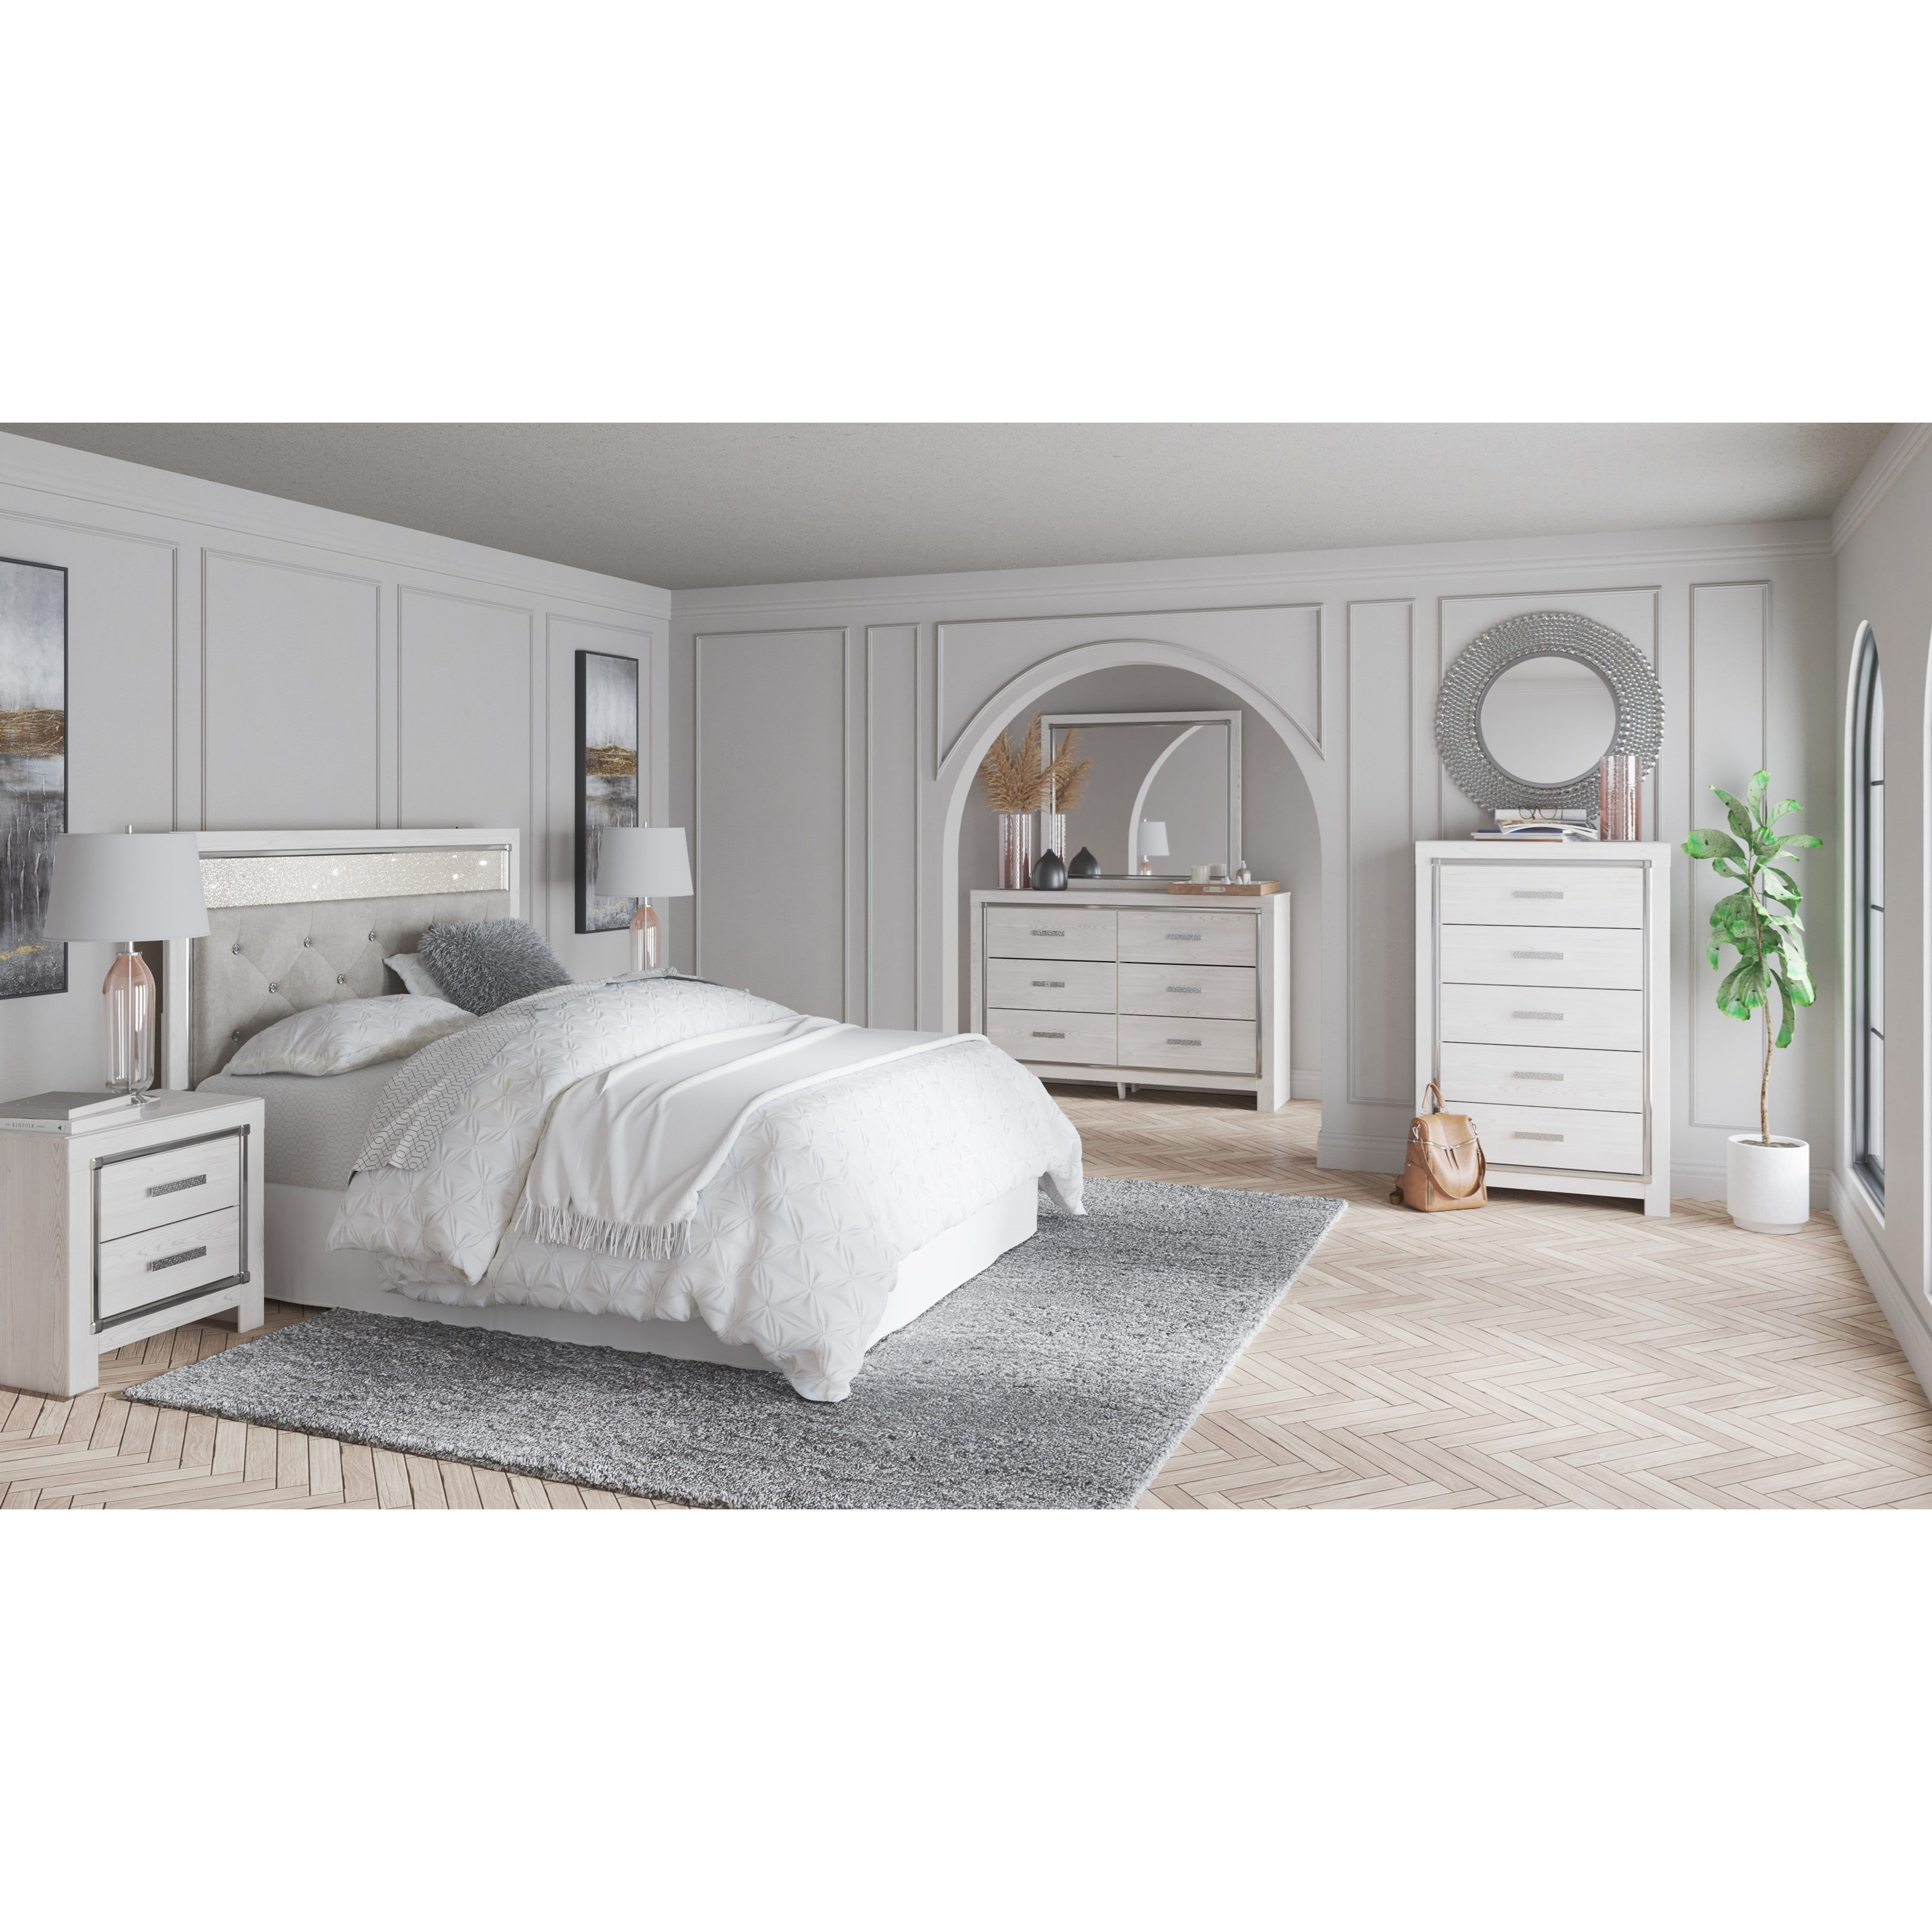 Altyra Queen Bedroom Group at Van Hill Furniture